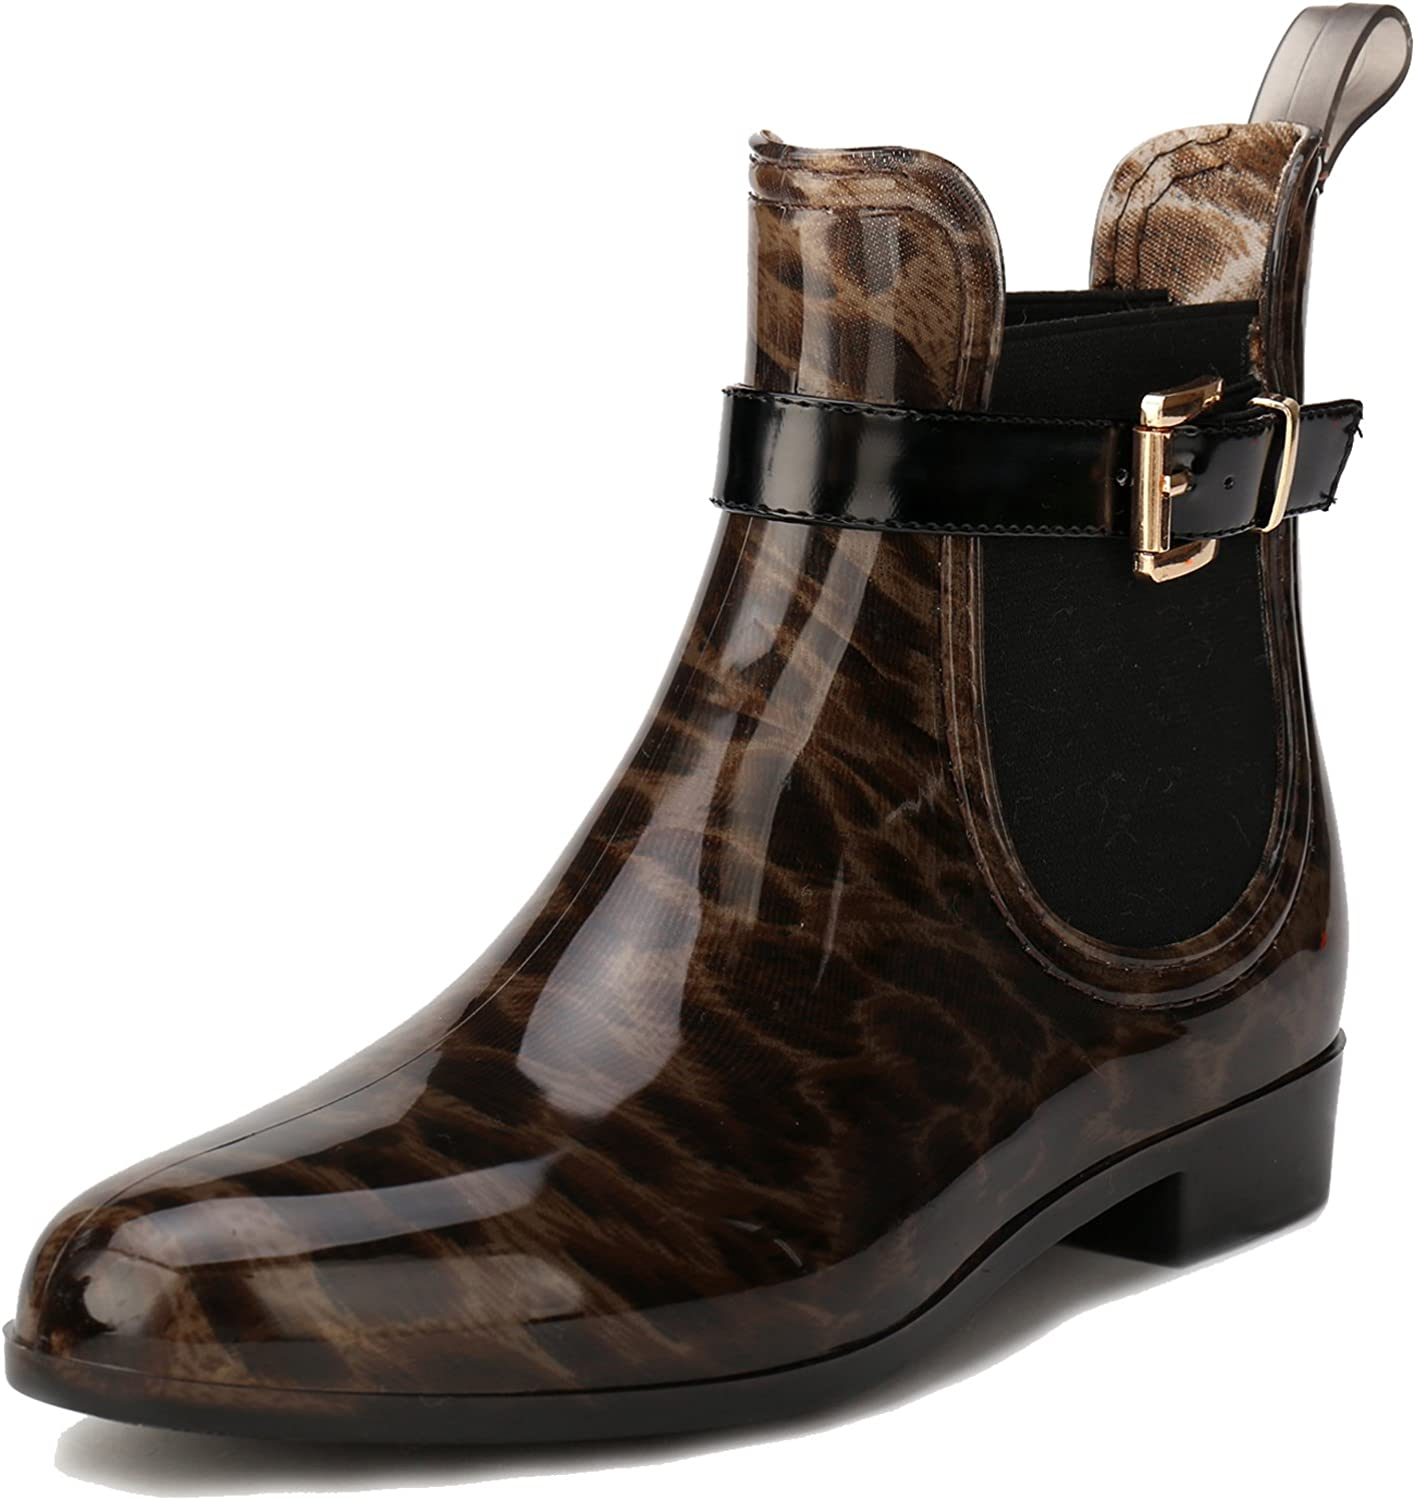 Alexis Leroy Womens Round Toe Diamond Buckle Style Waterproof Elastic Rubber Ankle Rain Boots